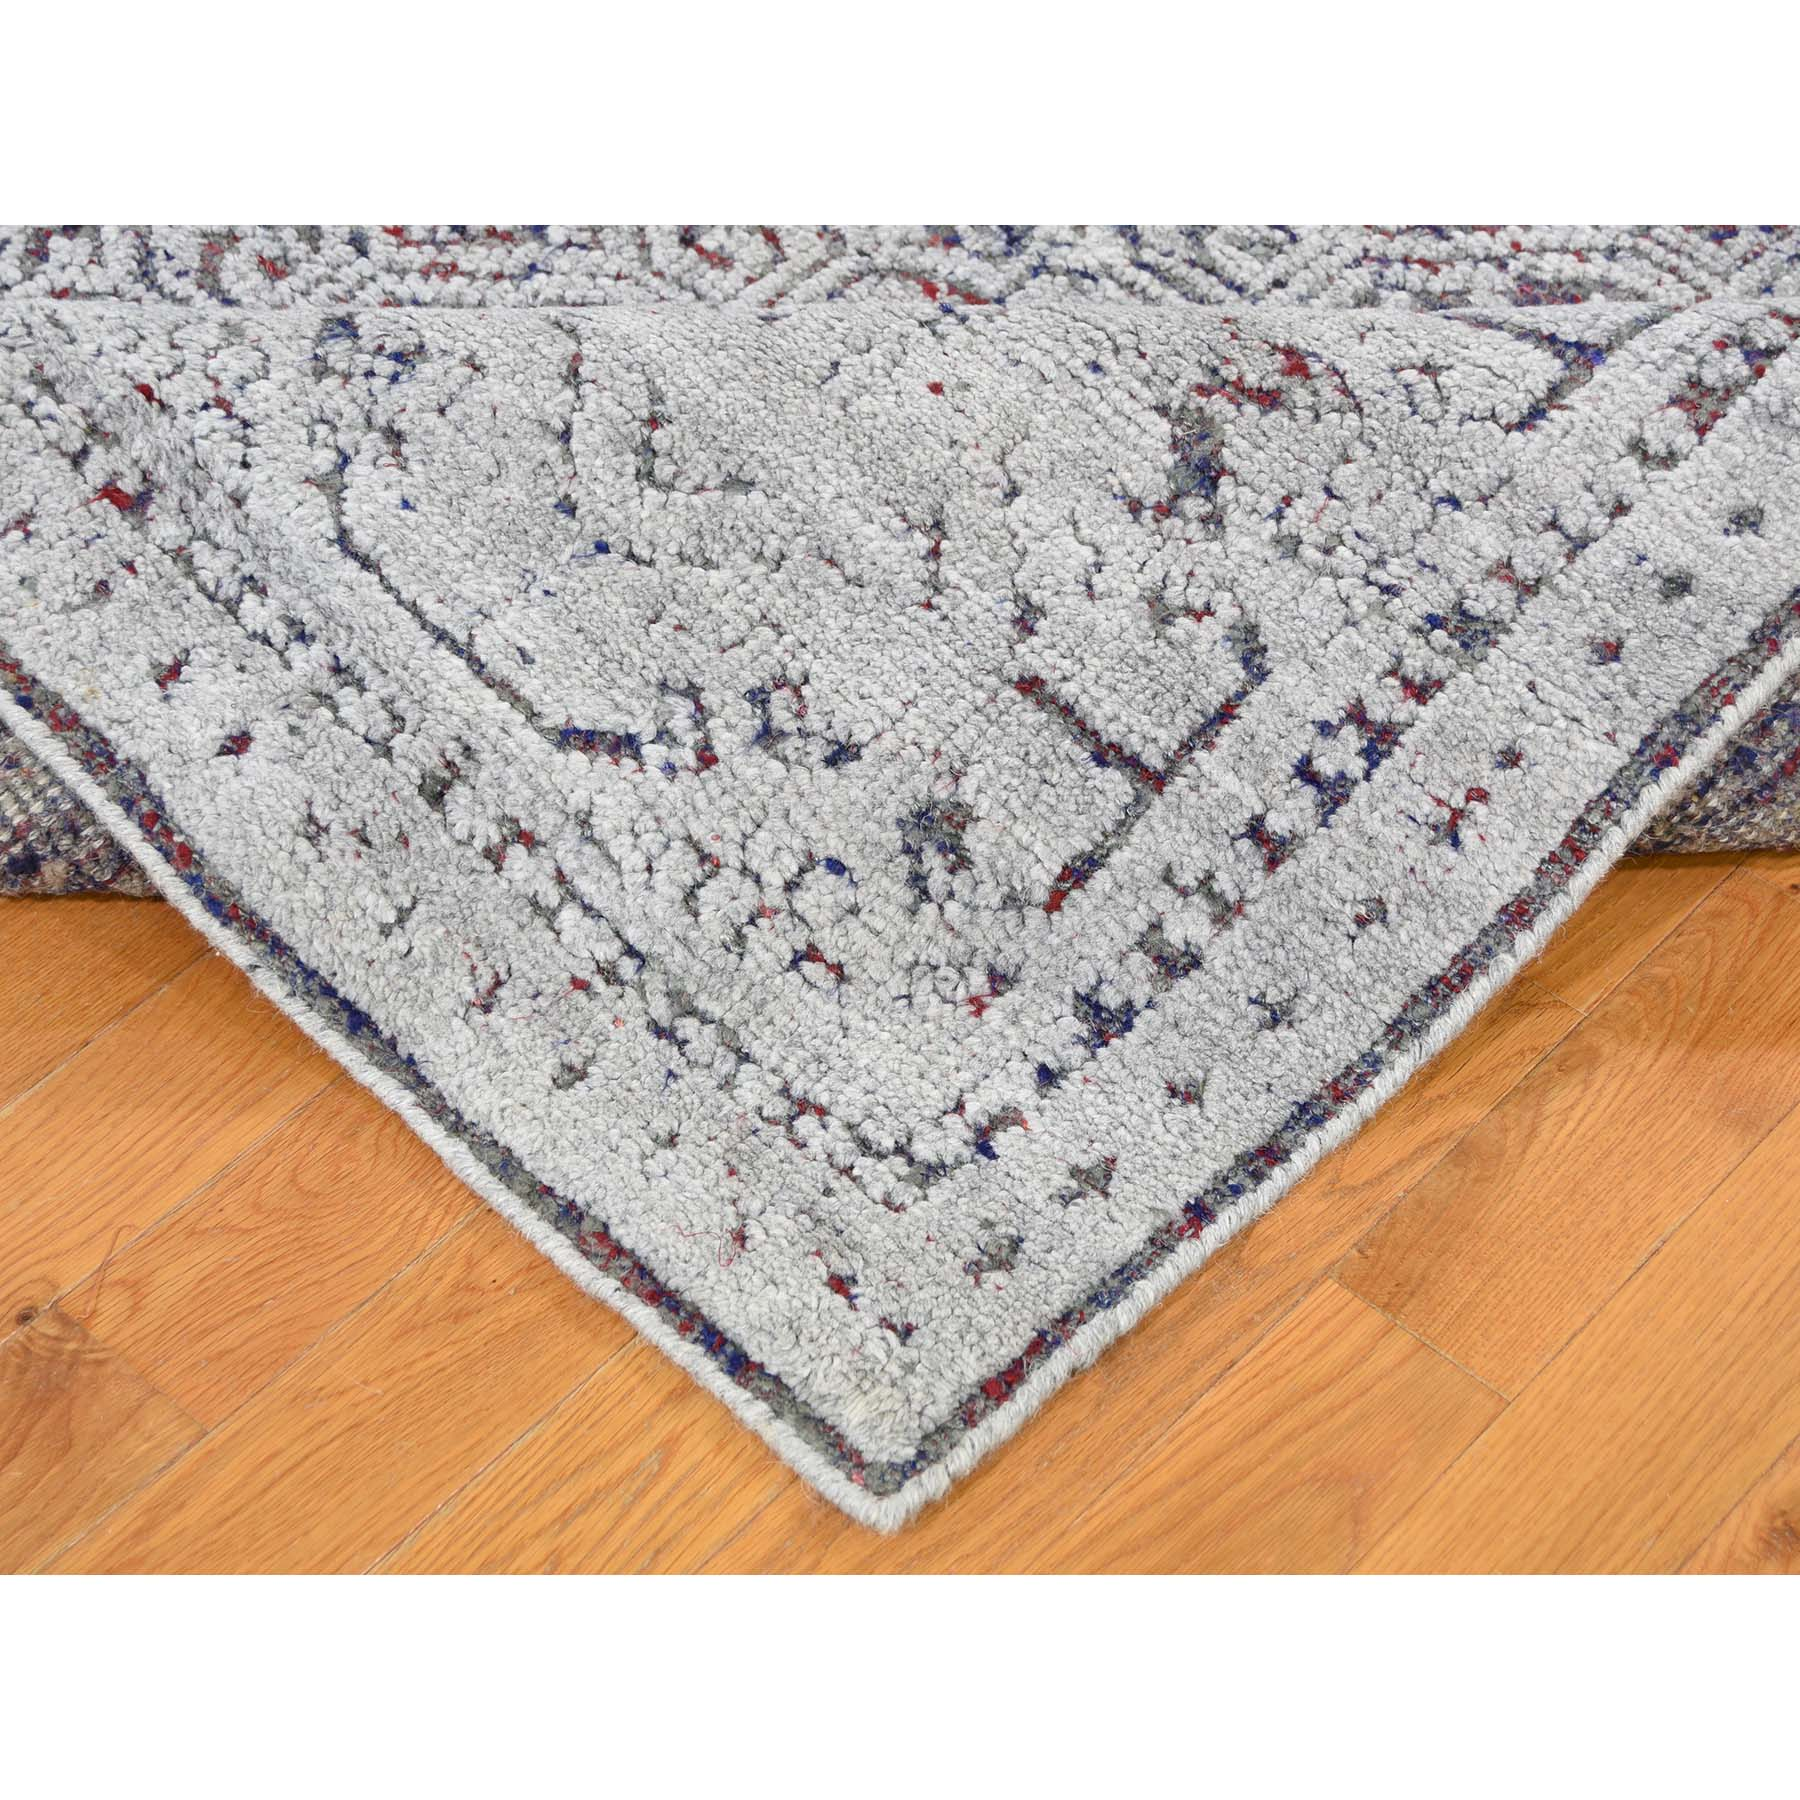 8-x10- Hi-Low Pile Oxidized Wool Khotan Design Hand-Knotted Oriental Rug